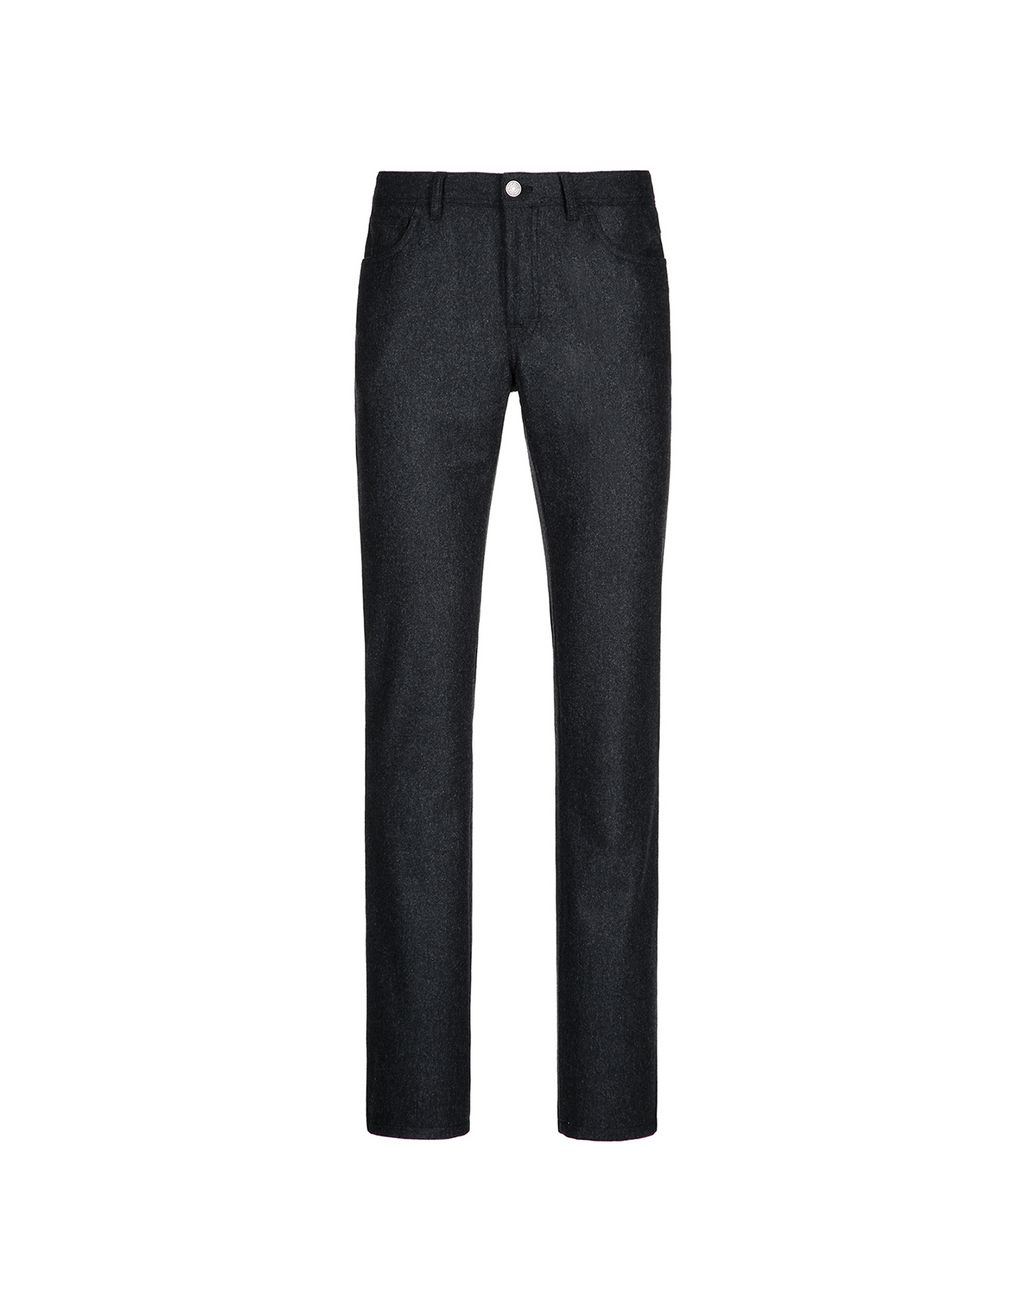 BRIONI Antrachite Trousers Trousers Man f